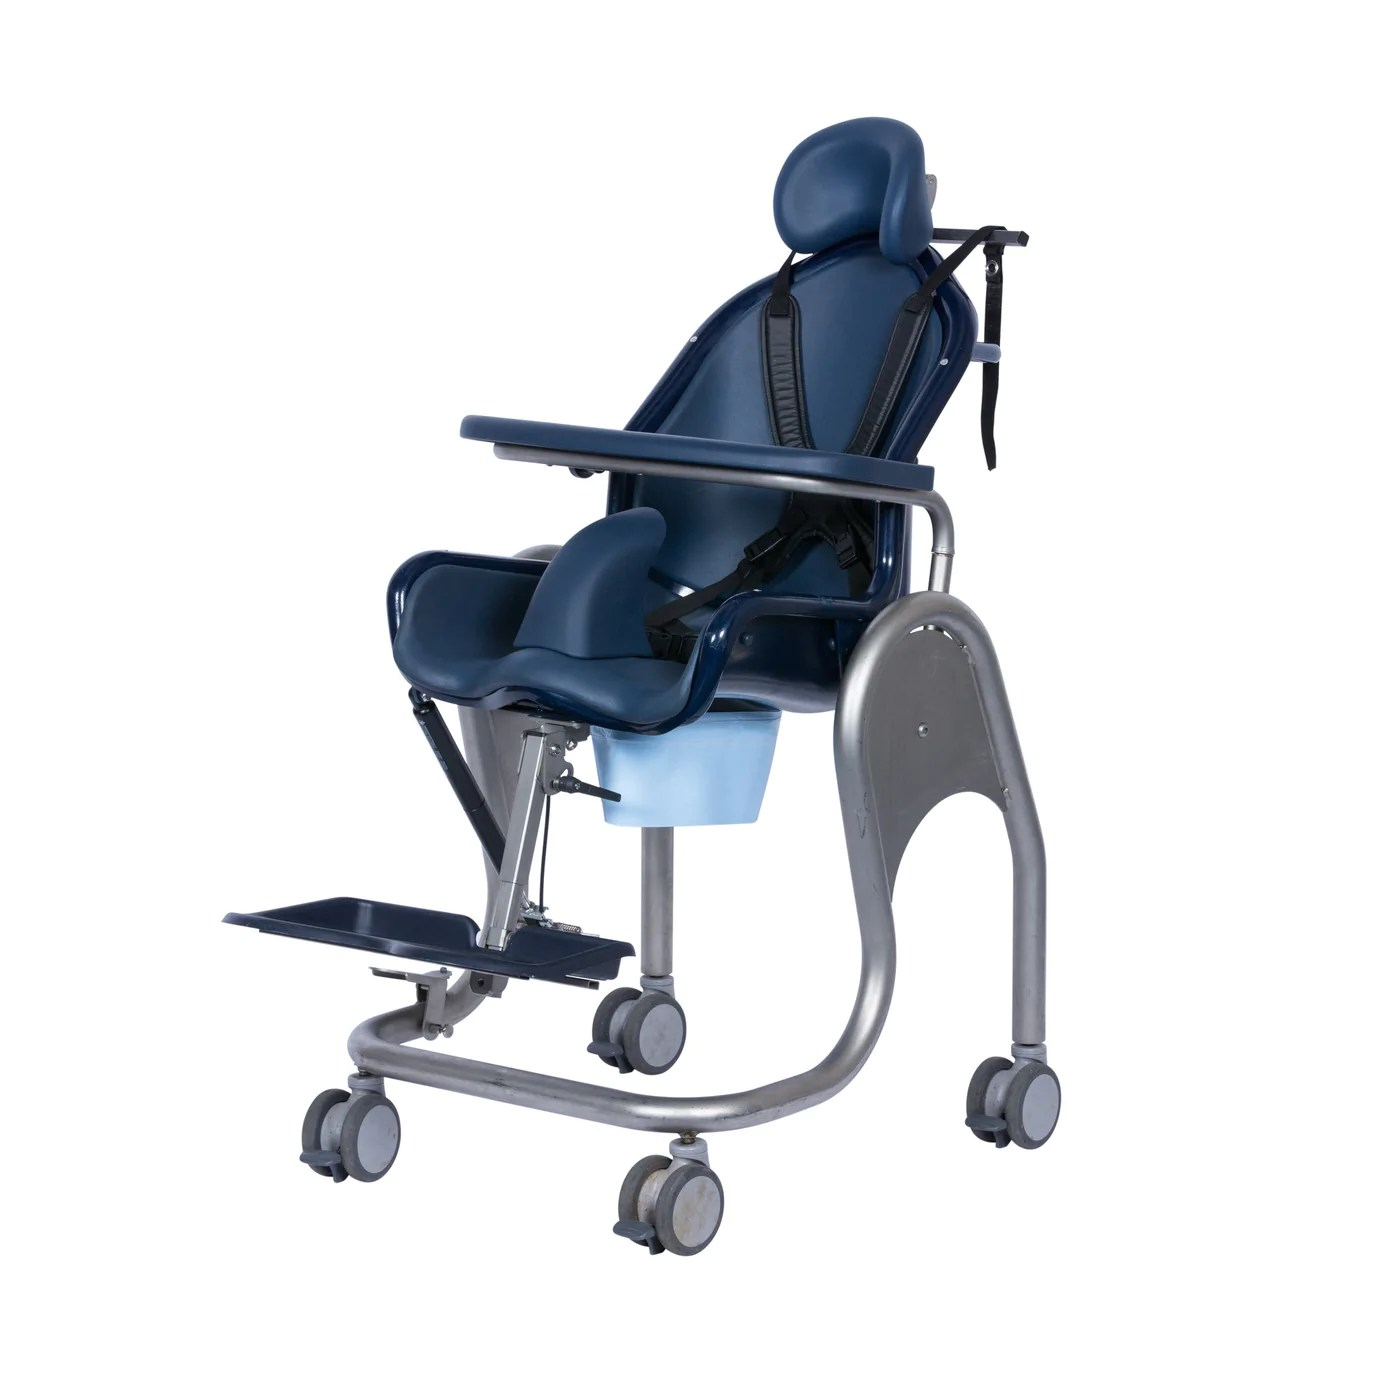 Handicap Bath Chair Tilt In Space Shower Toilet Chair Boris Kingkraft